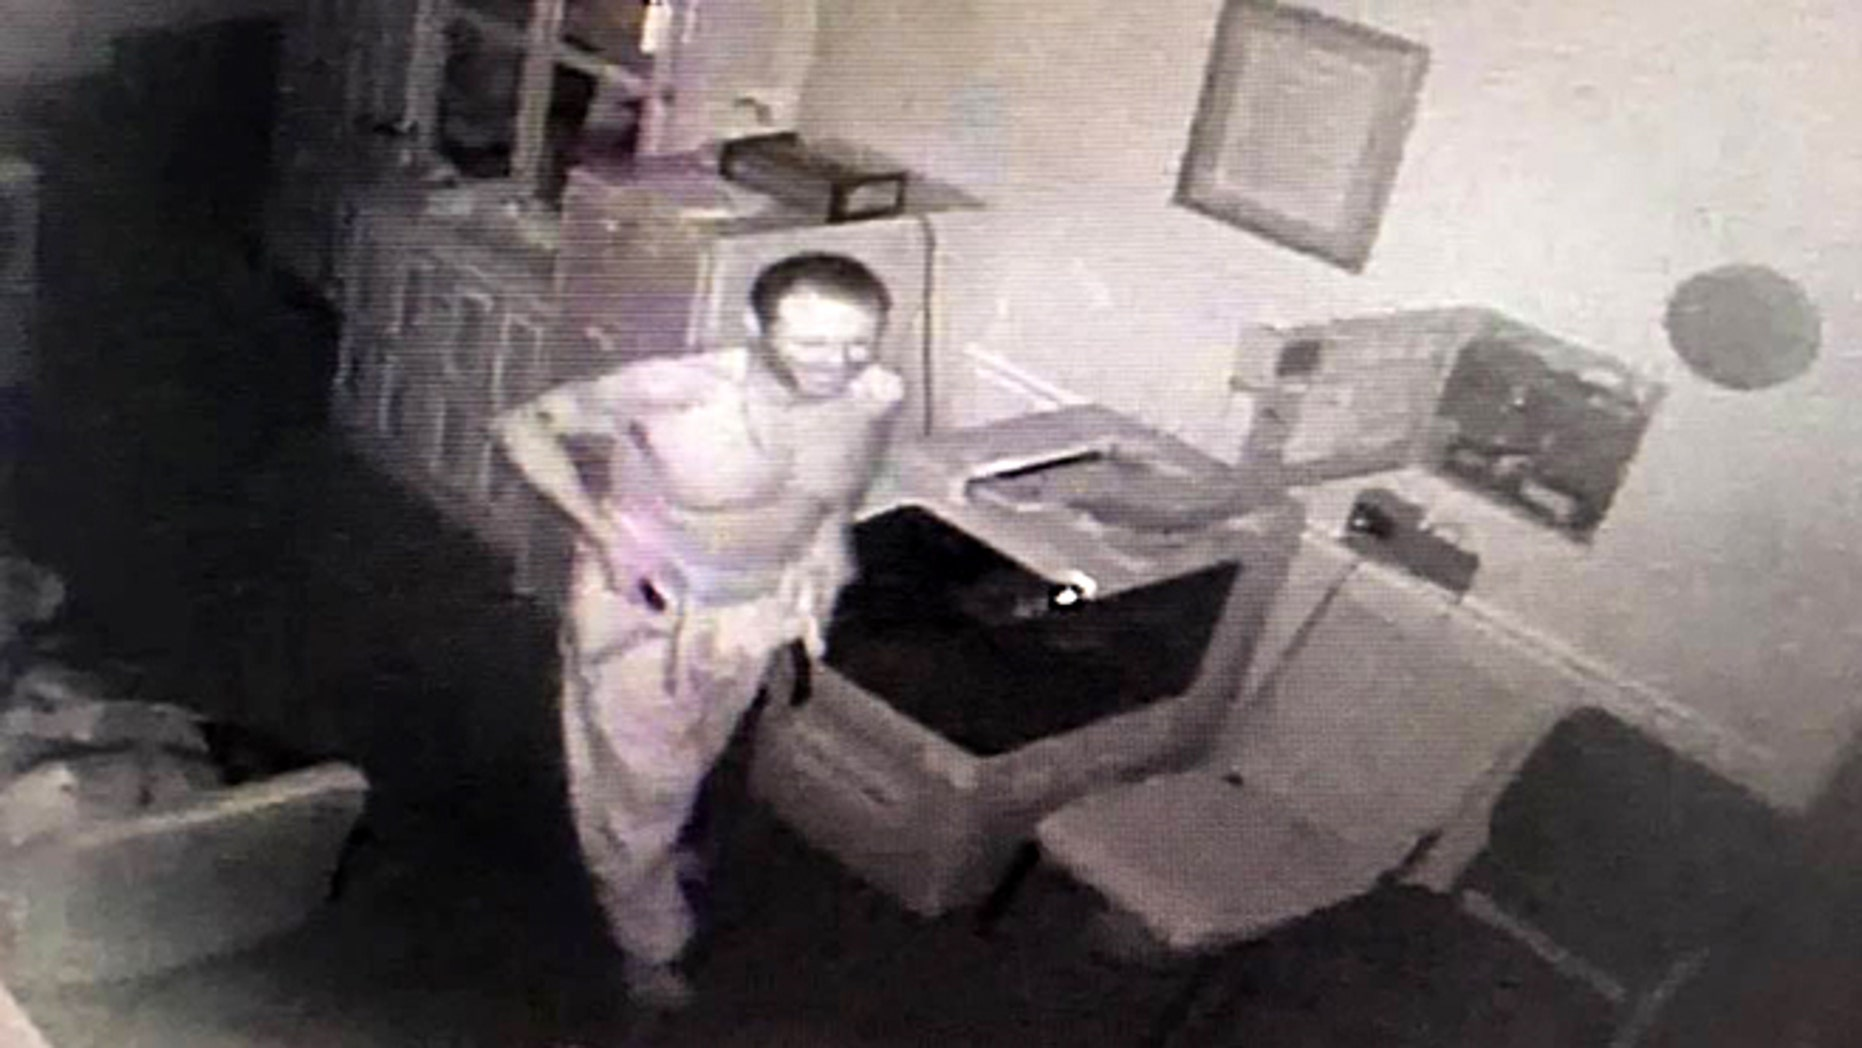 Leitchfield Police in Kentucky are investigating after a man was caught on camera stealing from a funeral home.